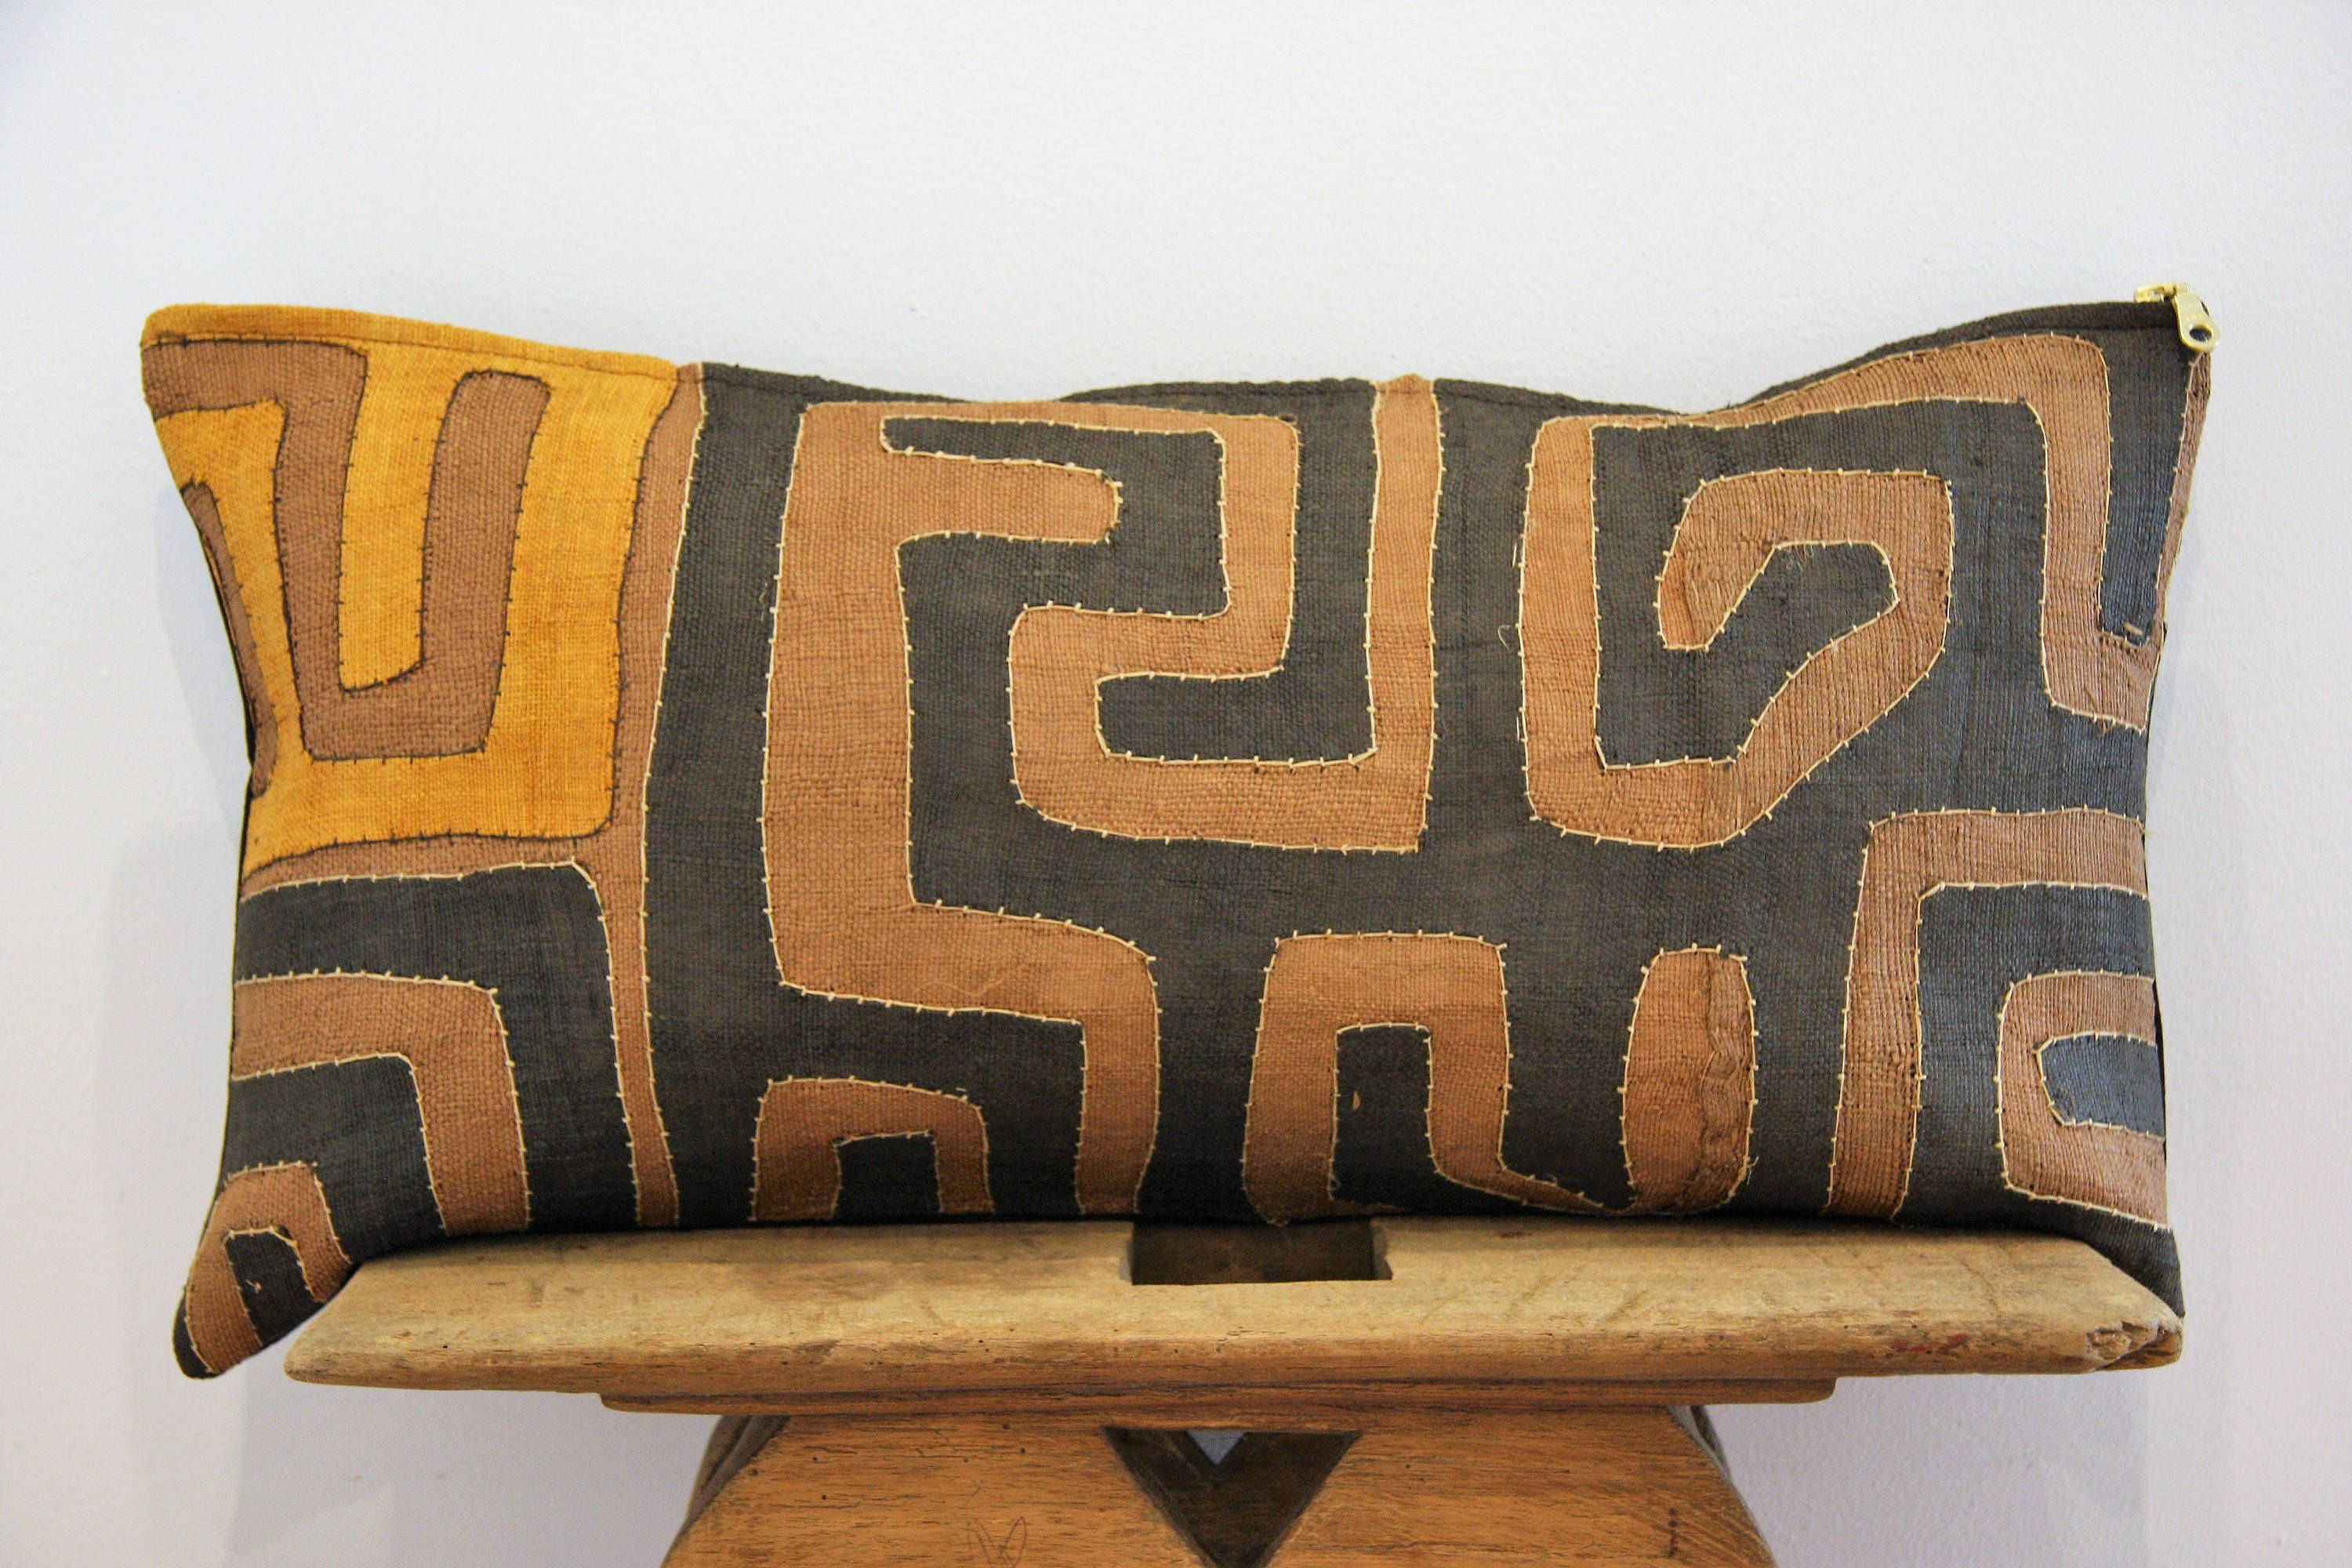 Kuba Cloth Pillow Cover 12x24 Vintage Fabric Africa Handwoven Patchwork Home Decor Cushion